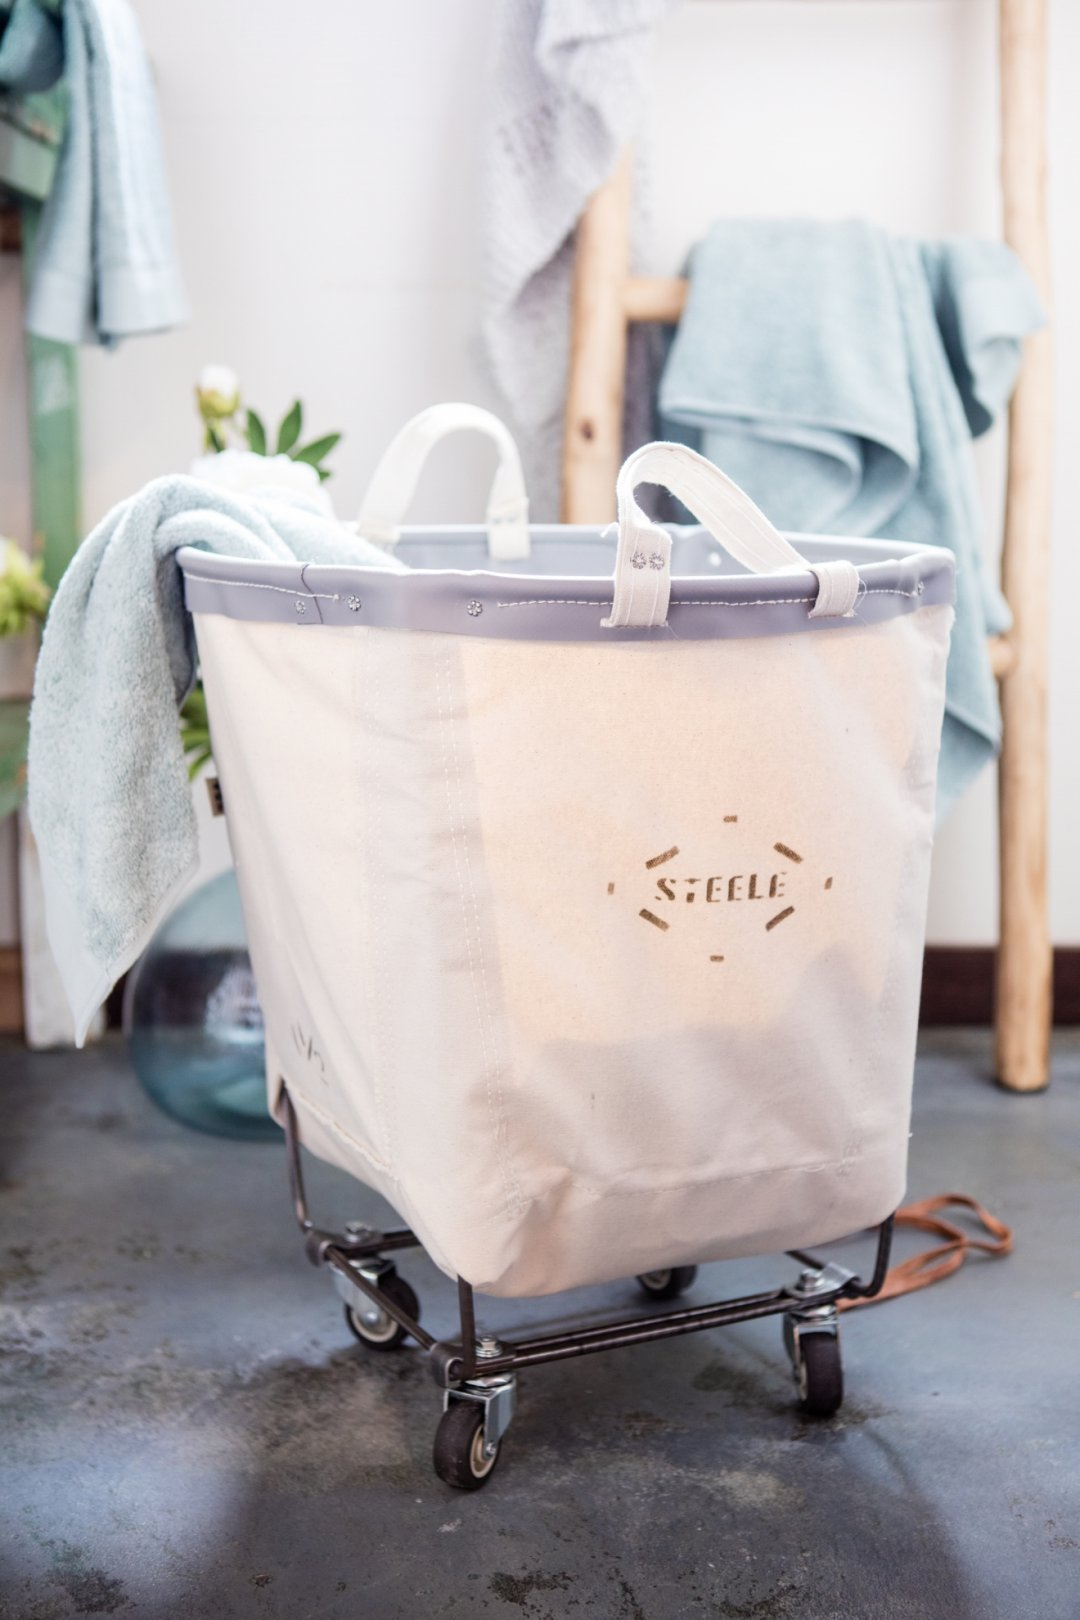 Laundry bin with towels